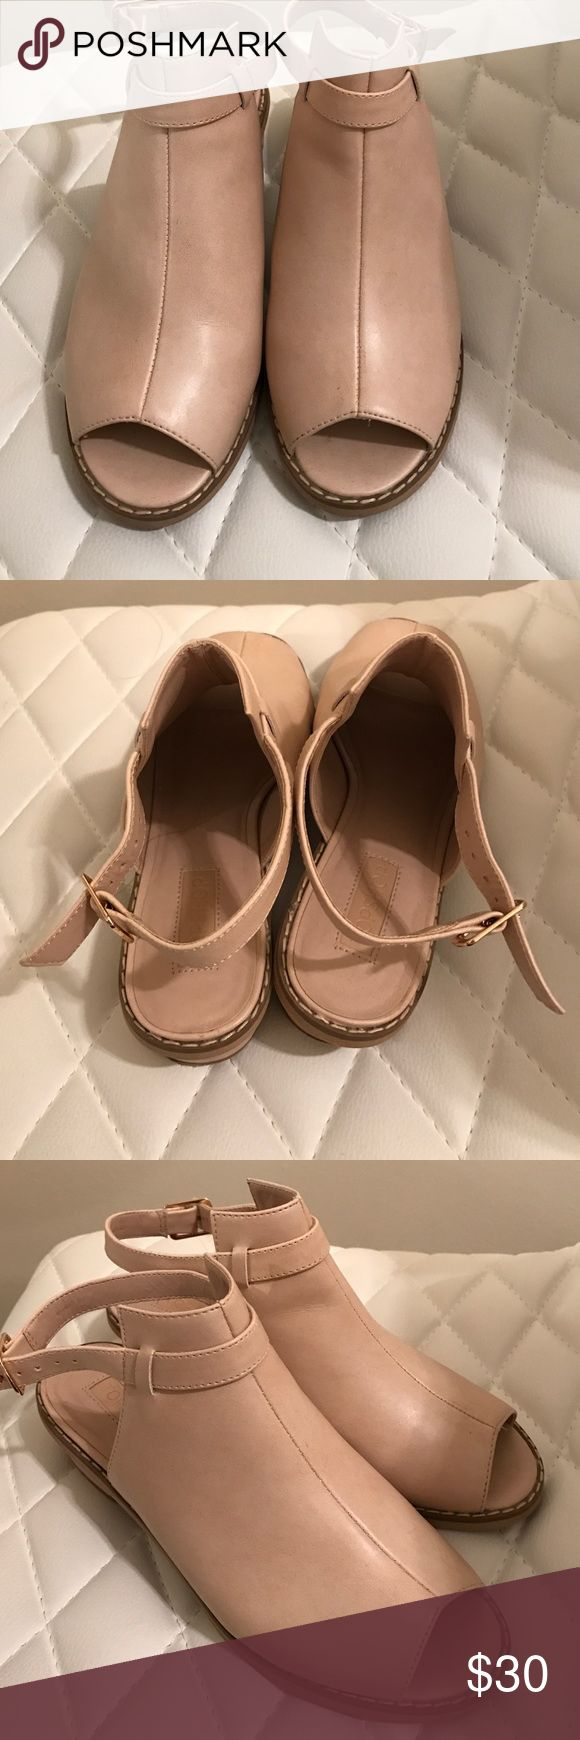 NUDE TOPSHOP SHOES Cute nude topshop shoes! Barely worn; great for casual or formal wear! Topshop Shoes Platforms